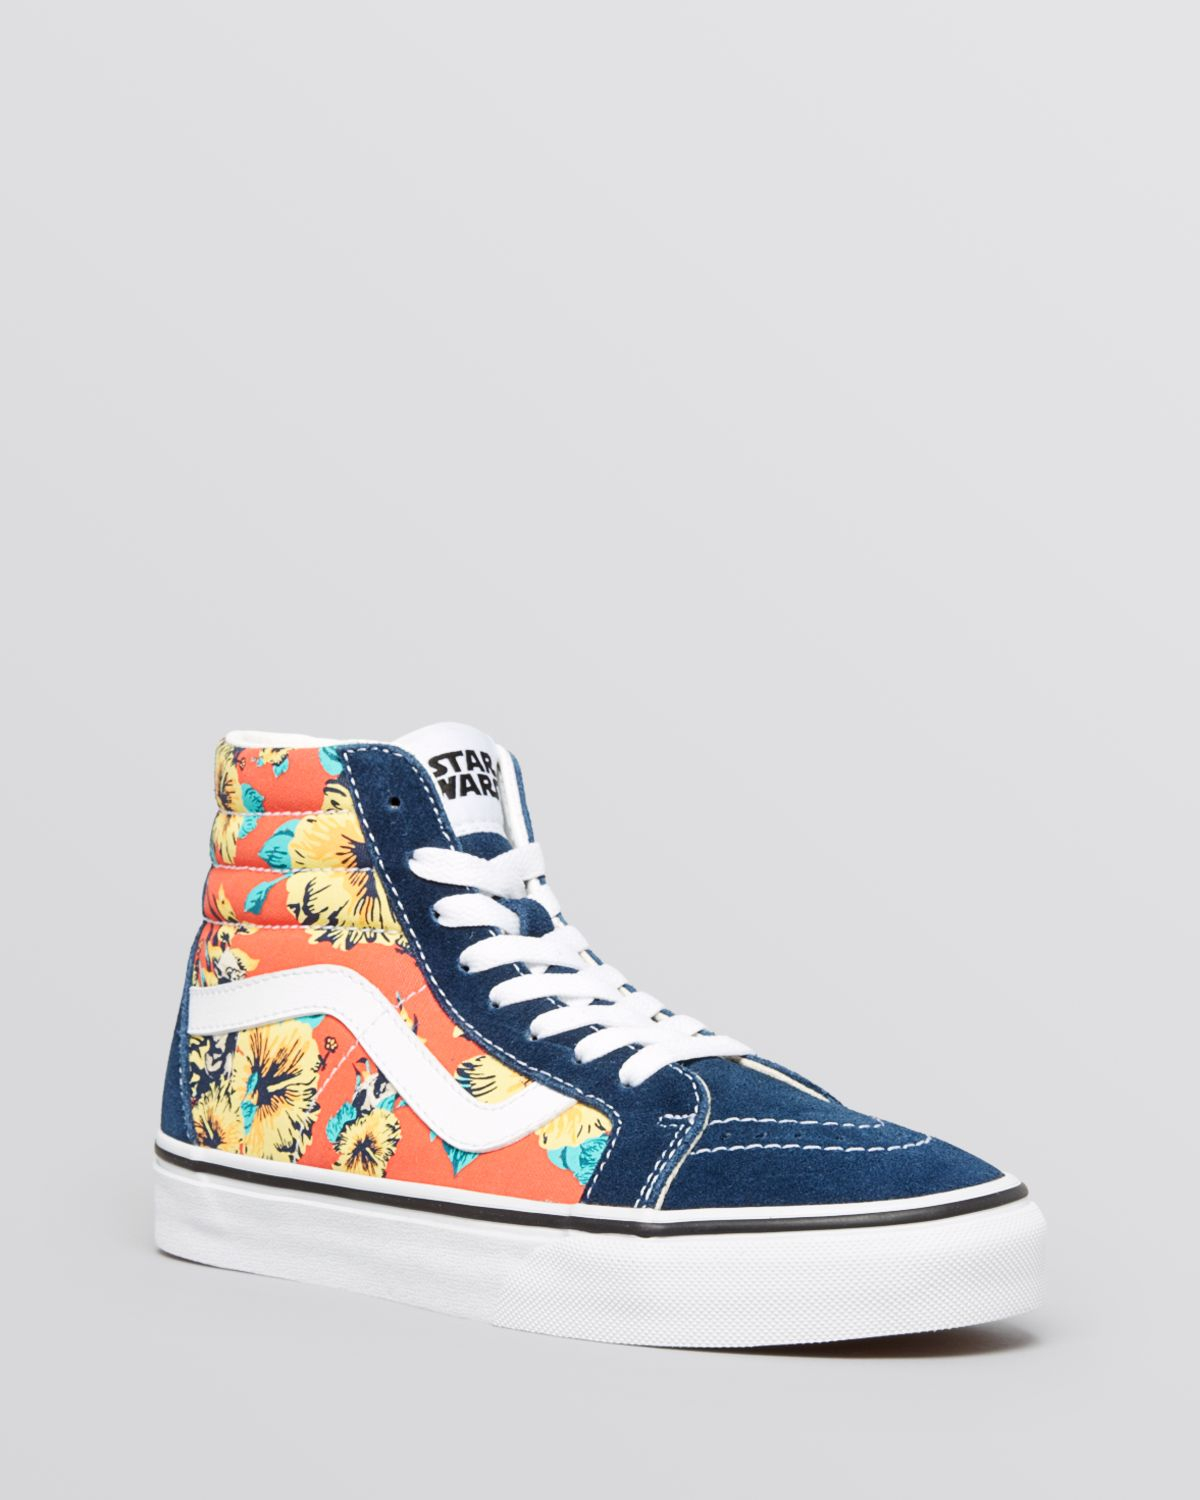 5662918184 Lyst - Vans Unisex Lace Up High Top Sneakers Sk8 Star Wars Yoda ...